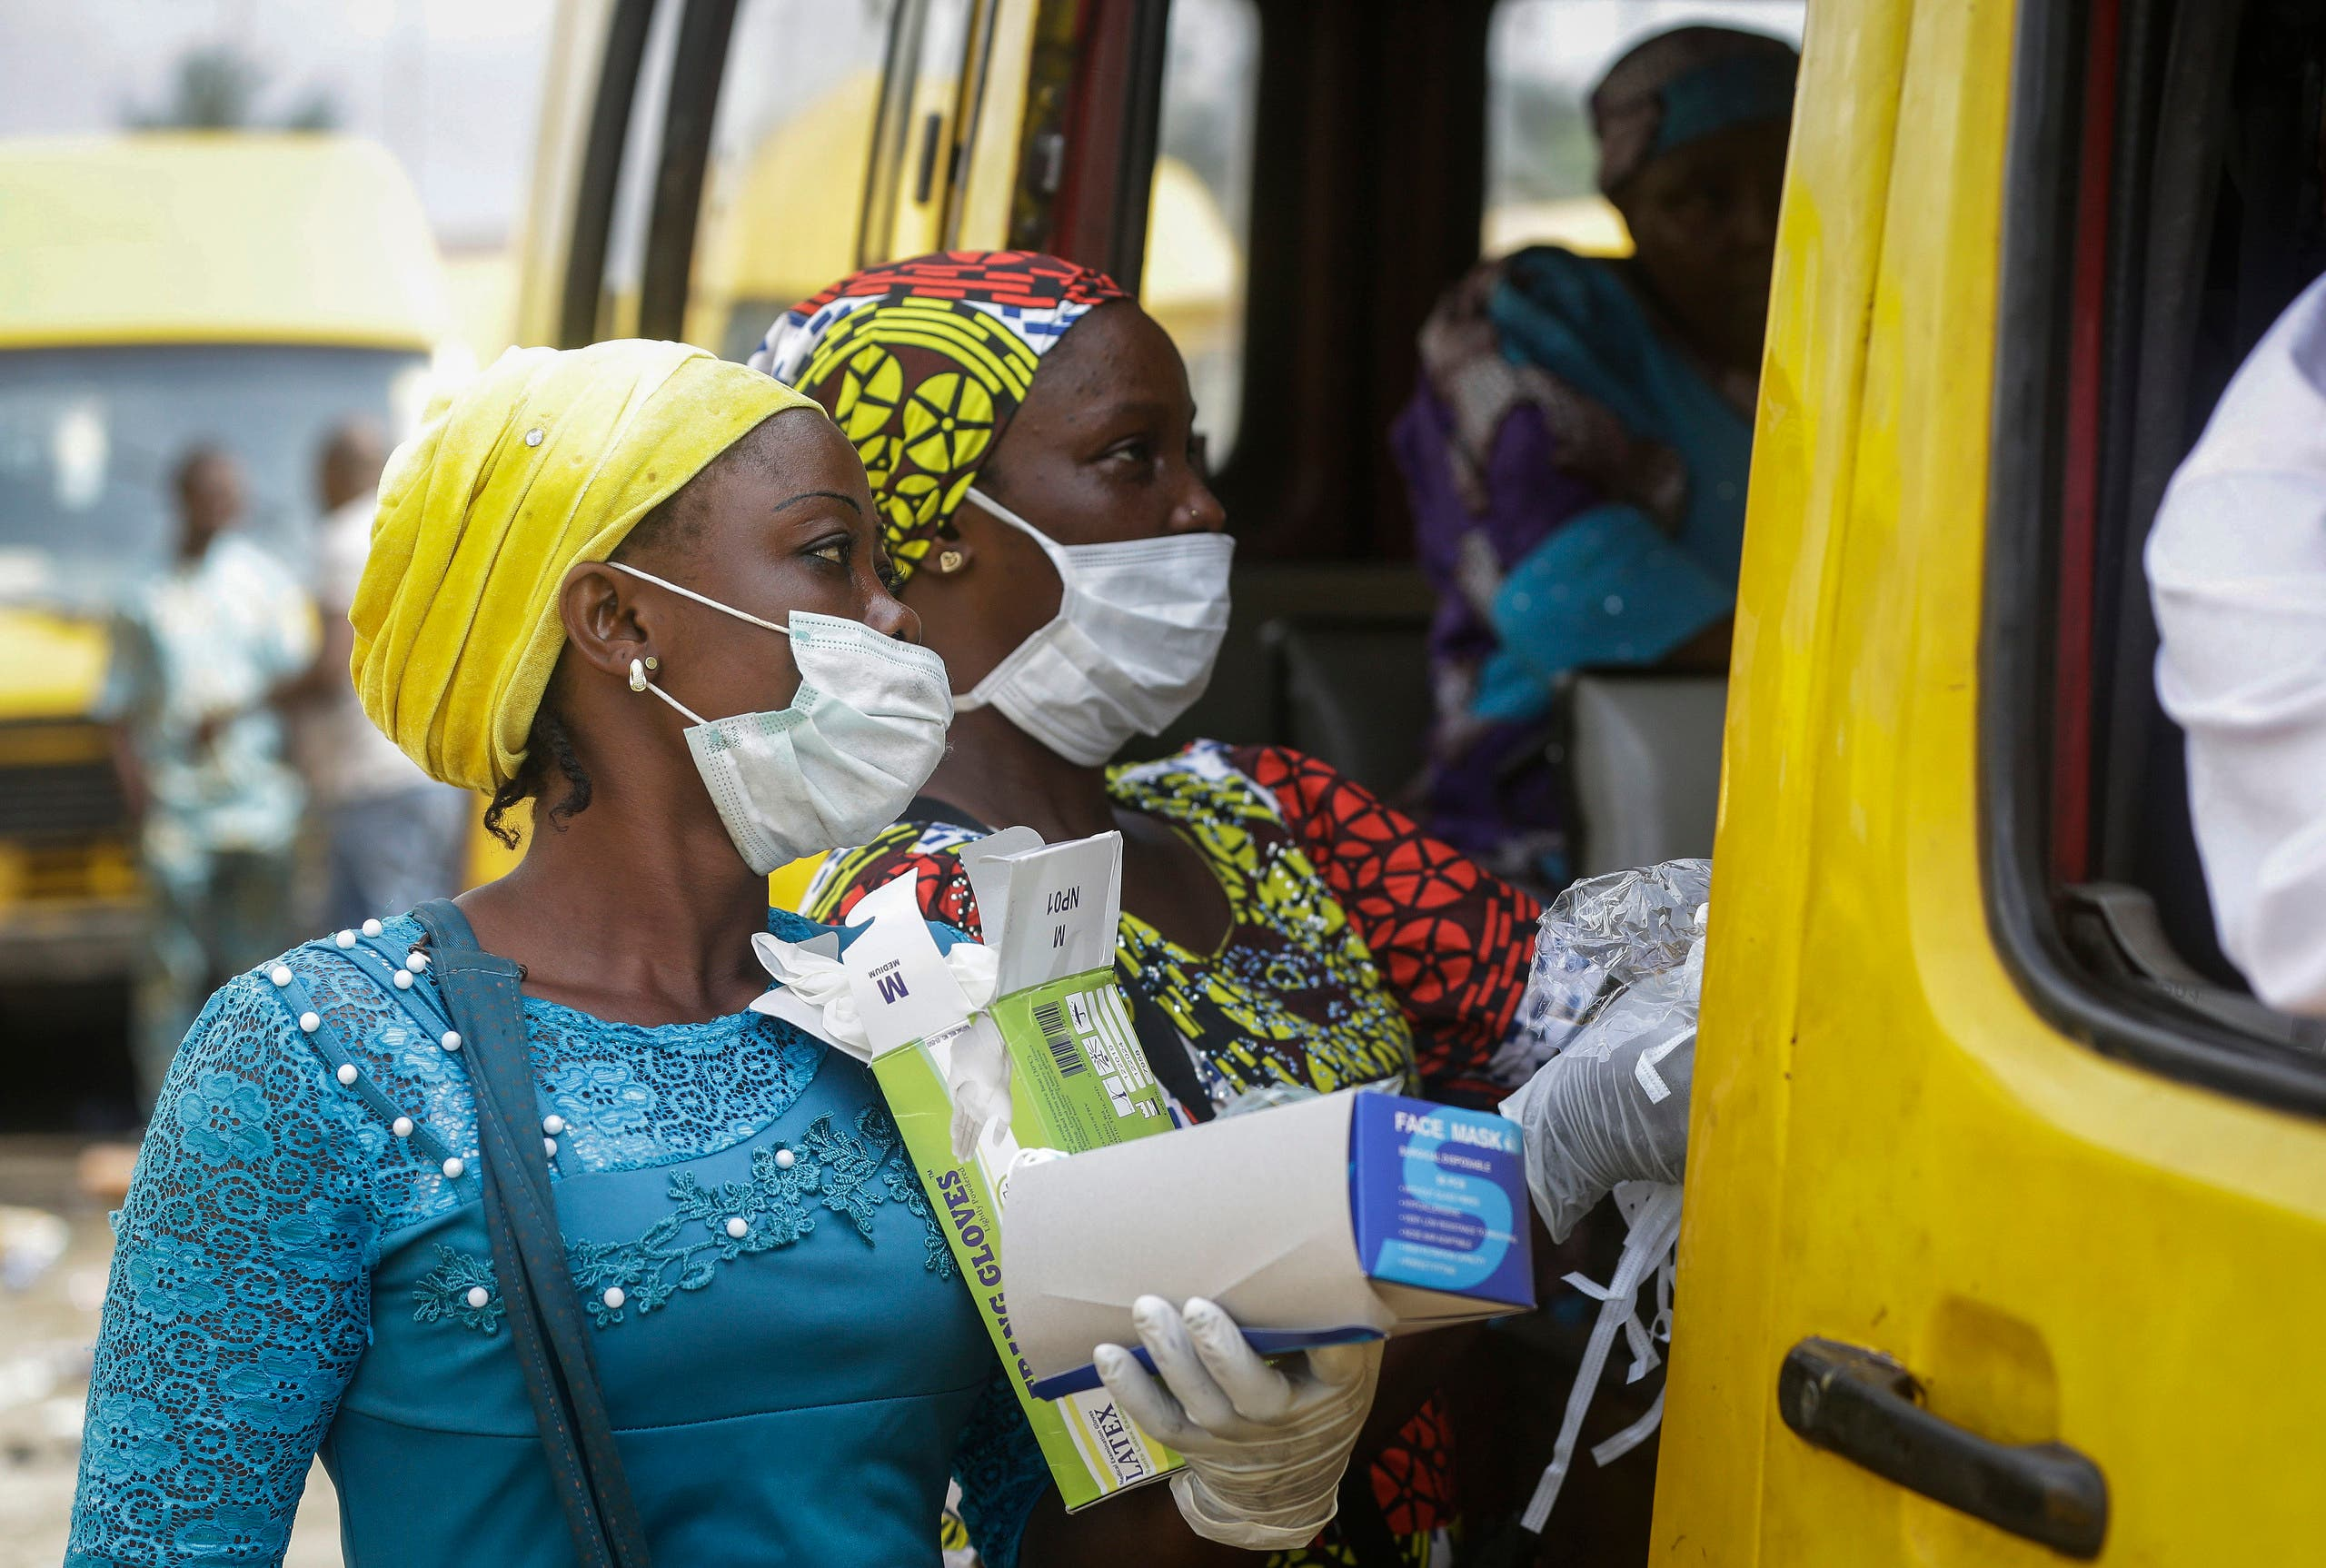 Women sell face masks and gloves, to prevent the spread of the new coronavirus, to passengers at a public minibus station in Lagos, Nigeria on Friday, March 27, 2020. (AP)